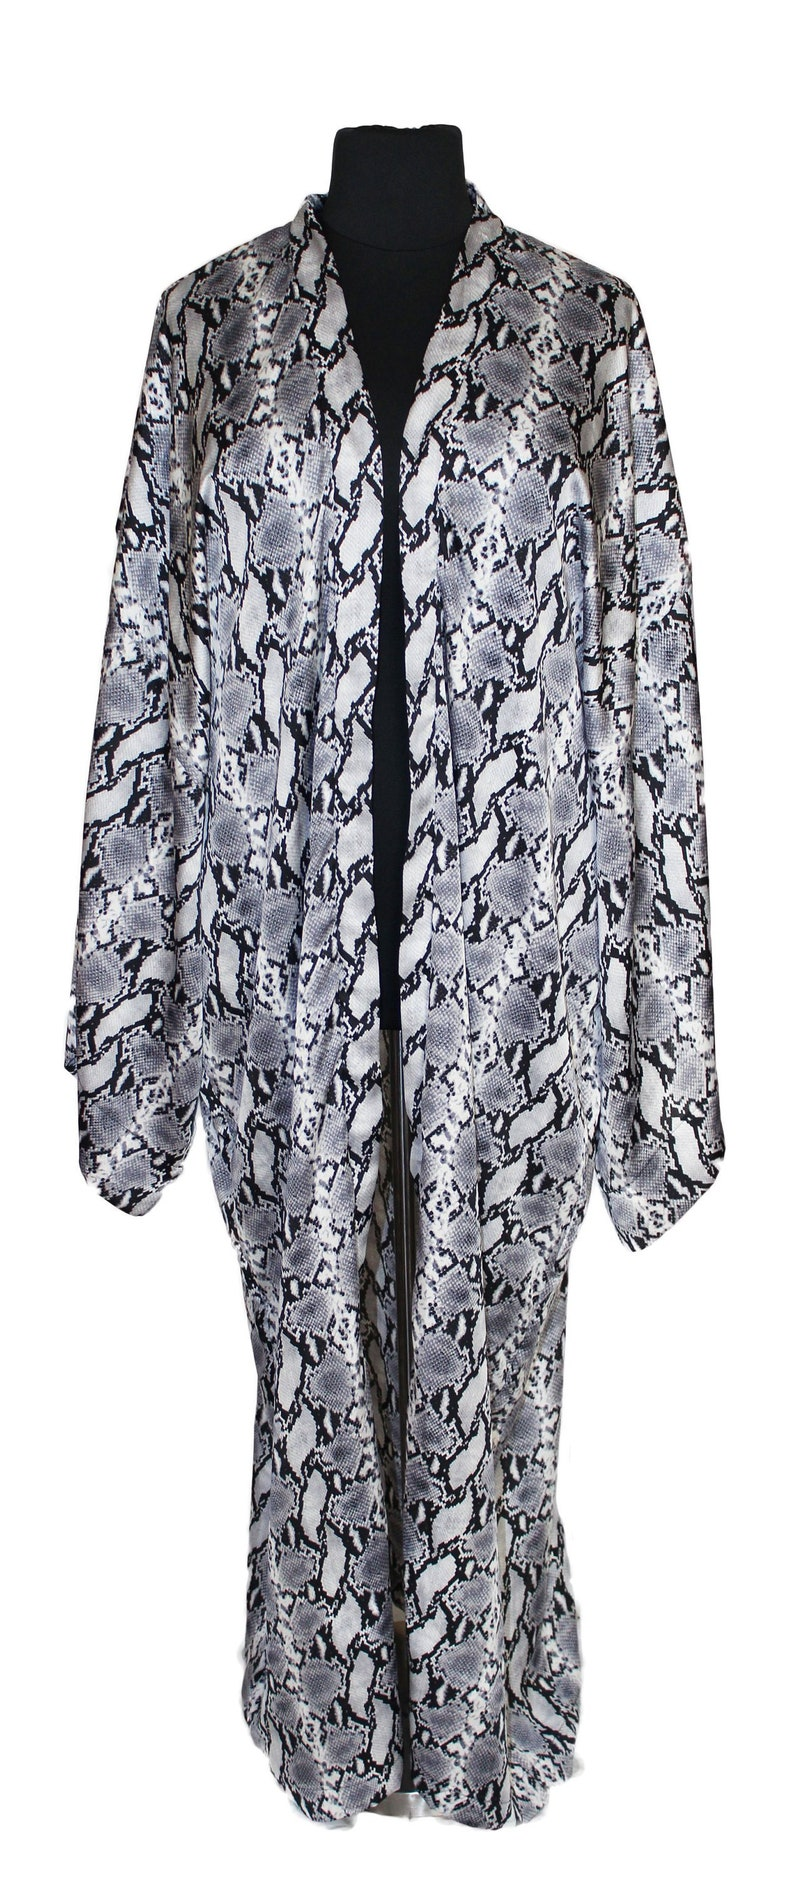 Plus Size Animal Print Kimono Plus Size Duster Swimsuit Cover image 0